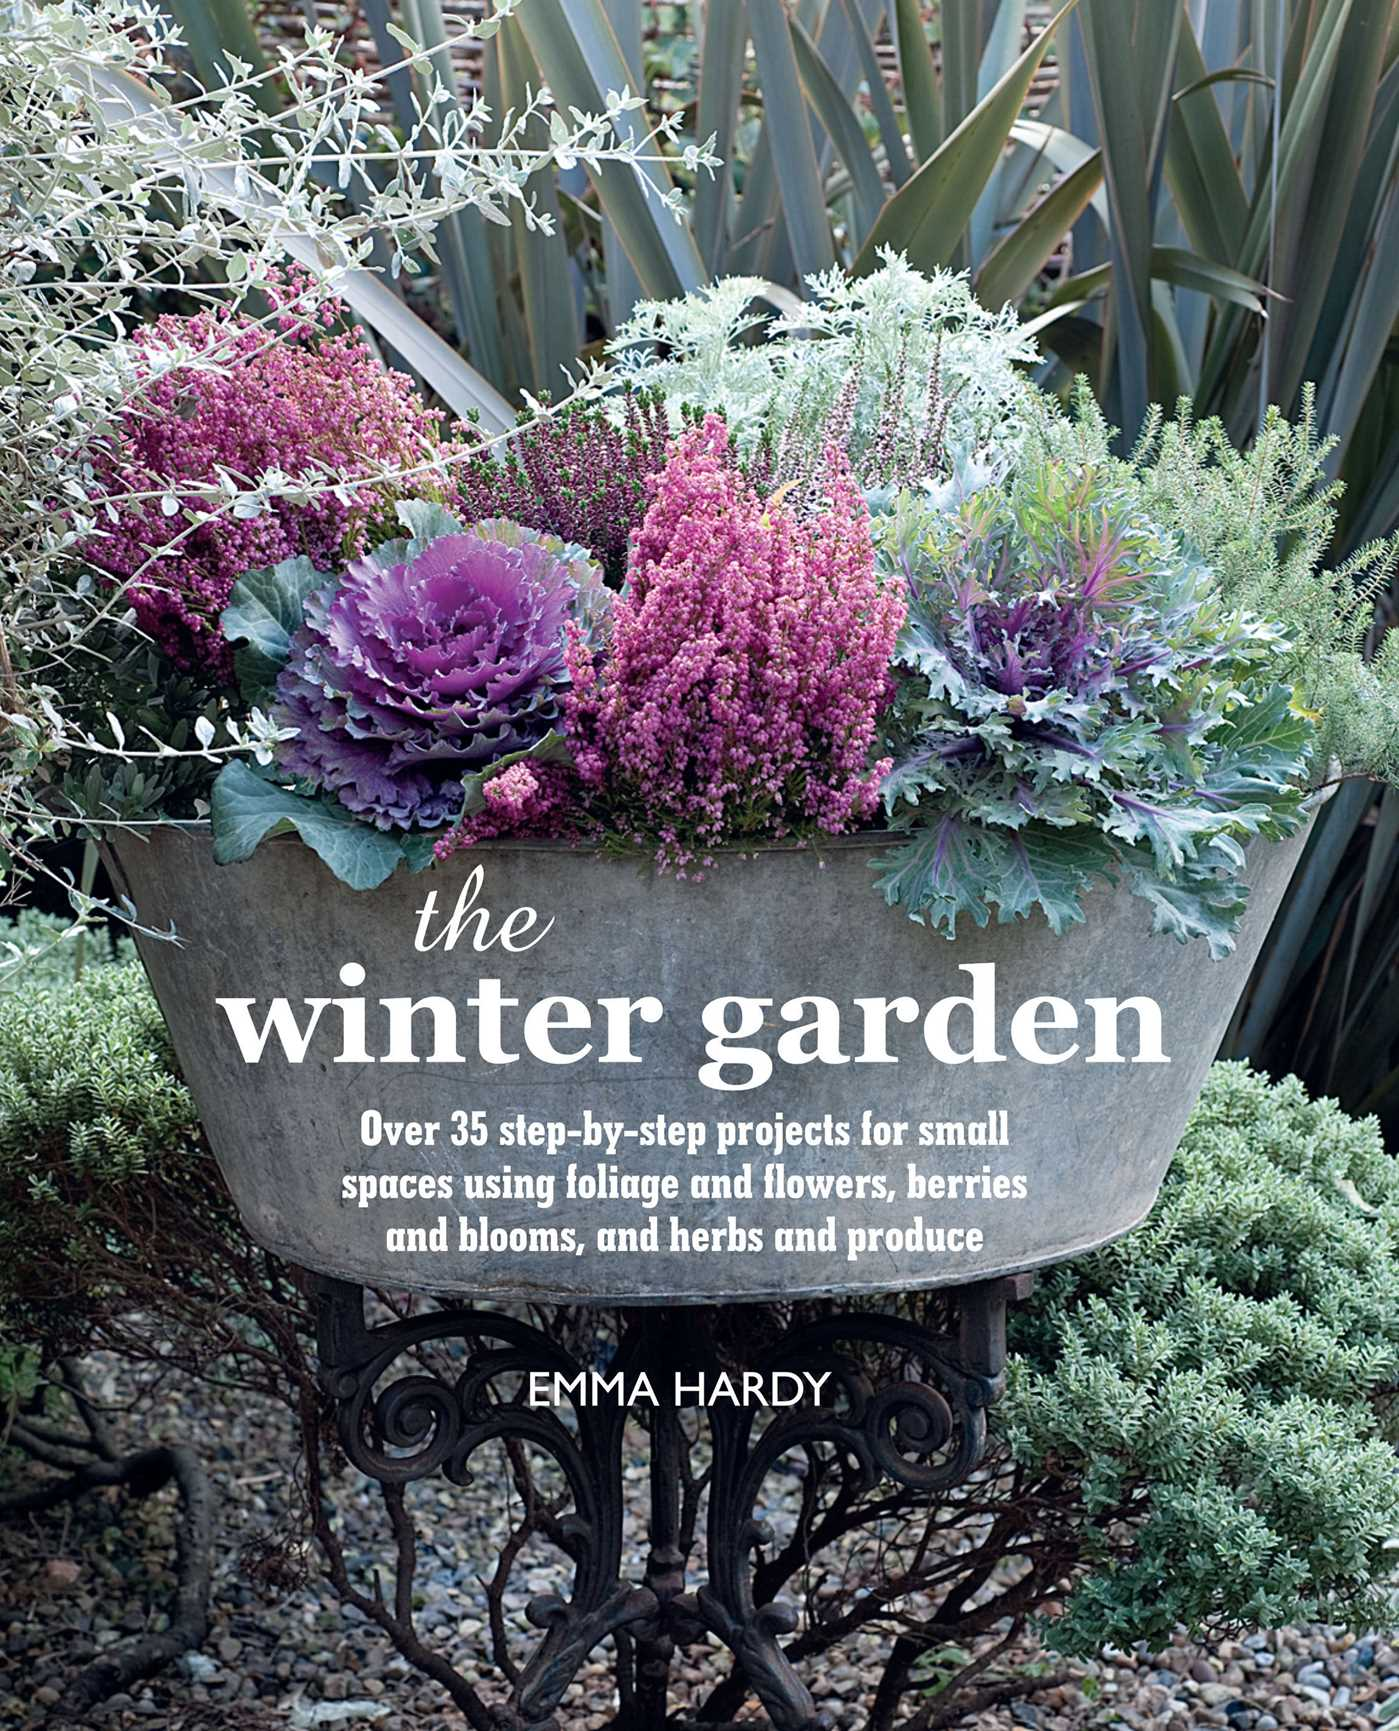 The winter garden book by emma hardy official publisher page simon schuster - Gardening mistakes maintaining garden winter ...